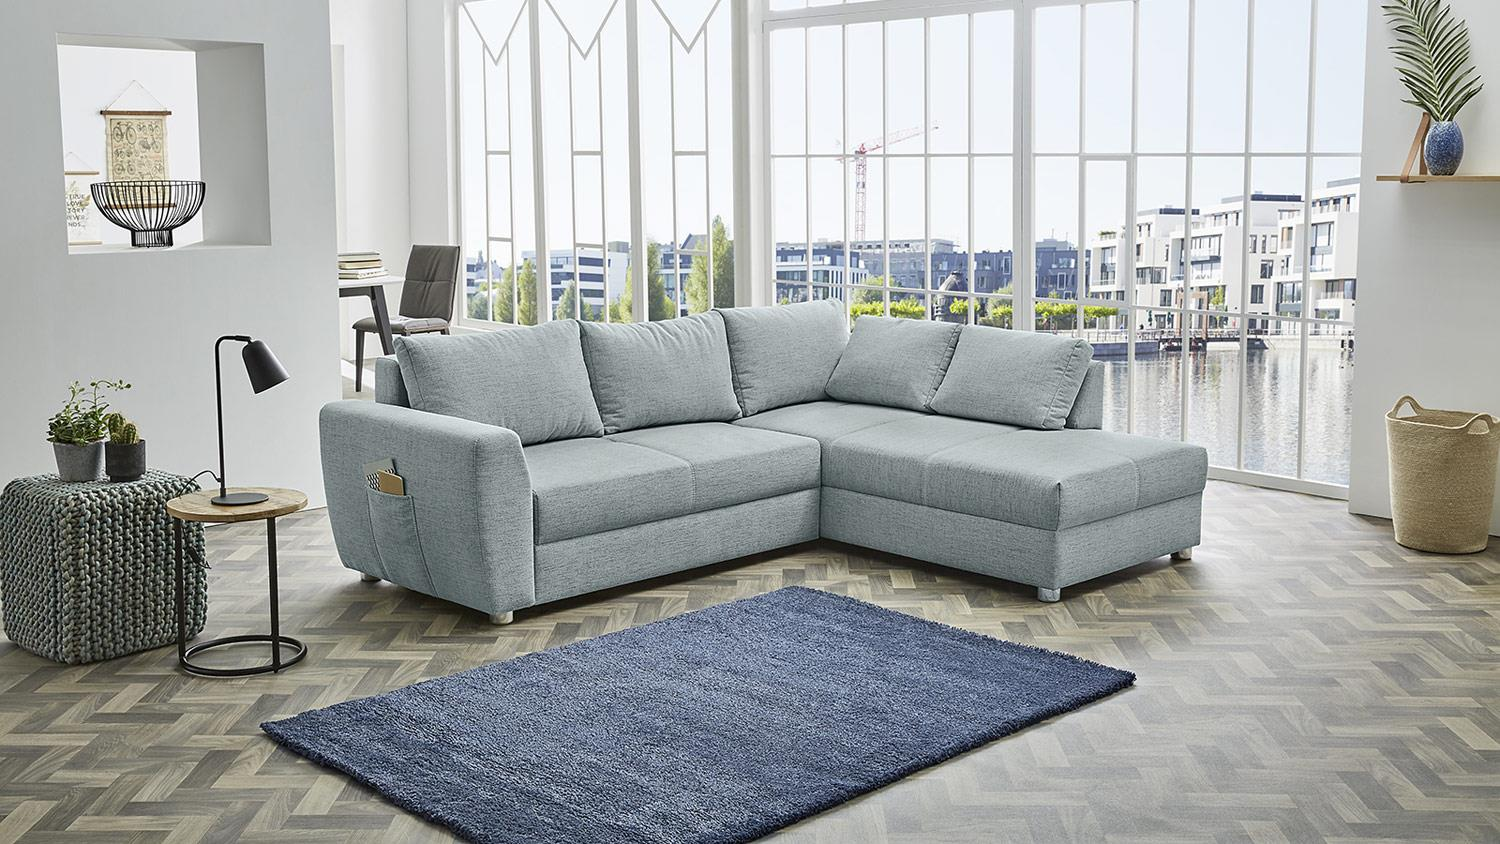 Ecksofa Feldberg Sofa Wohnlandschaft In Mint Grun Bettfunktion 251x197